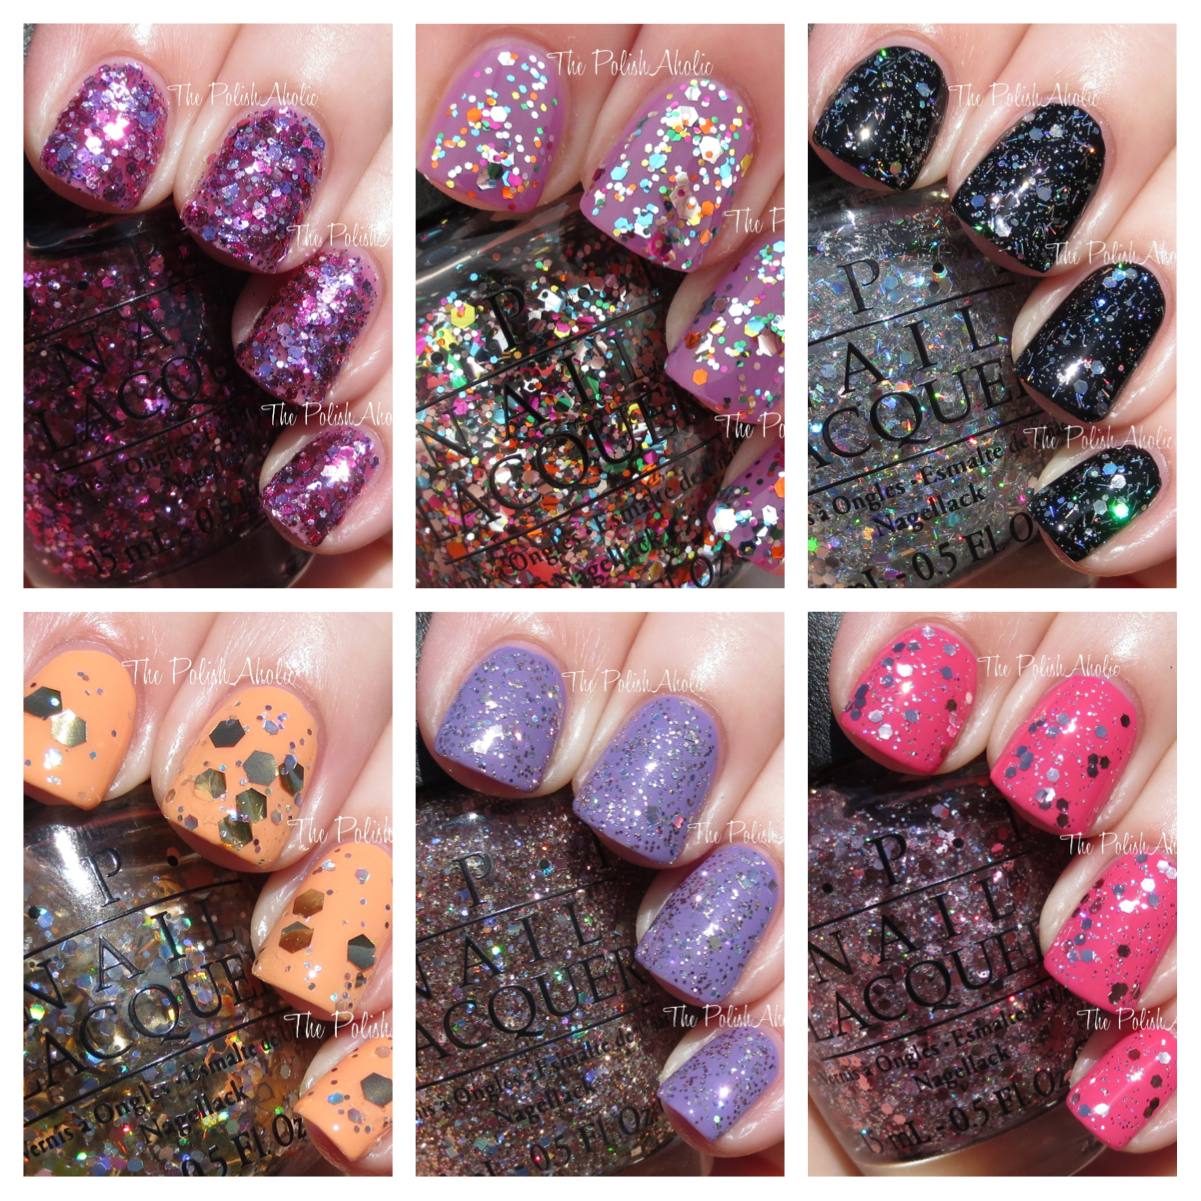 Opi Spotlight On Glitter Collection Swatches